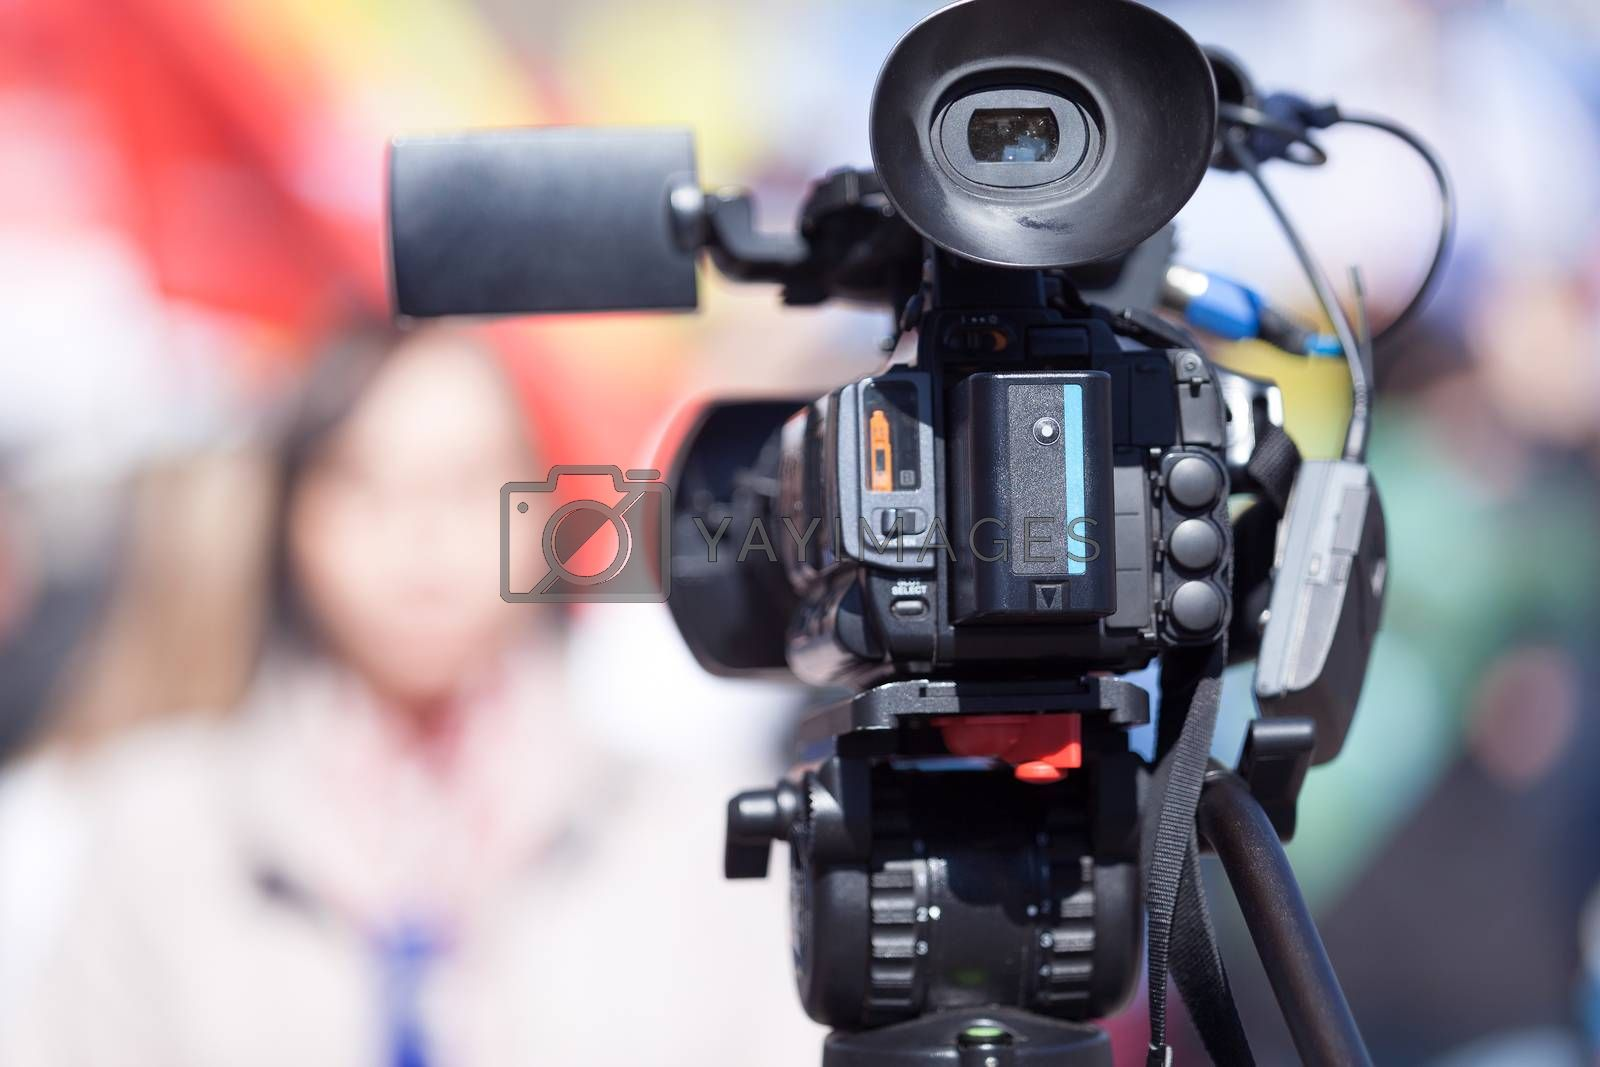 Television camera in the focus, blurred female journalist in the background. TV broadcasting.